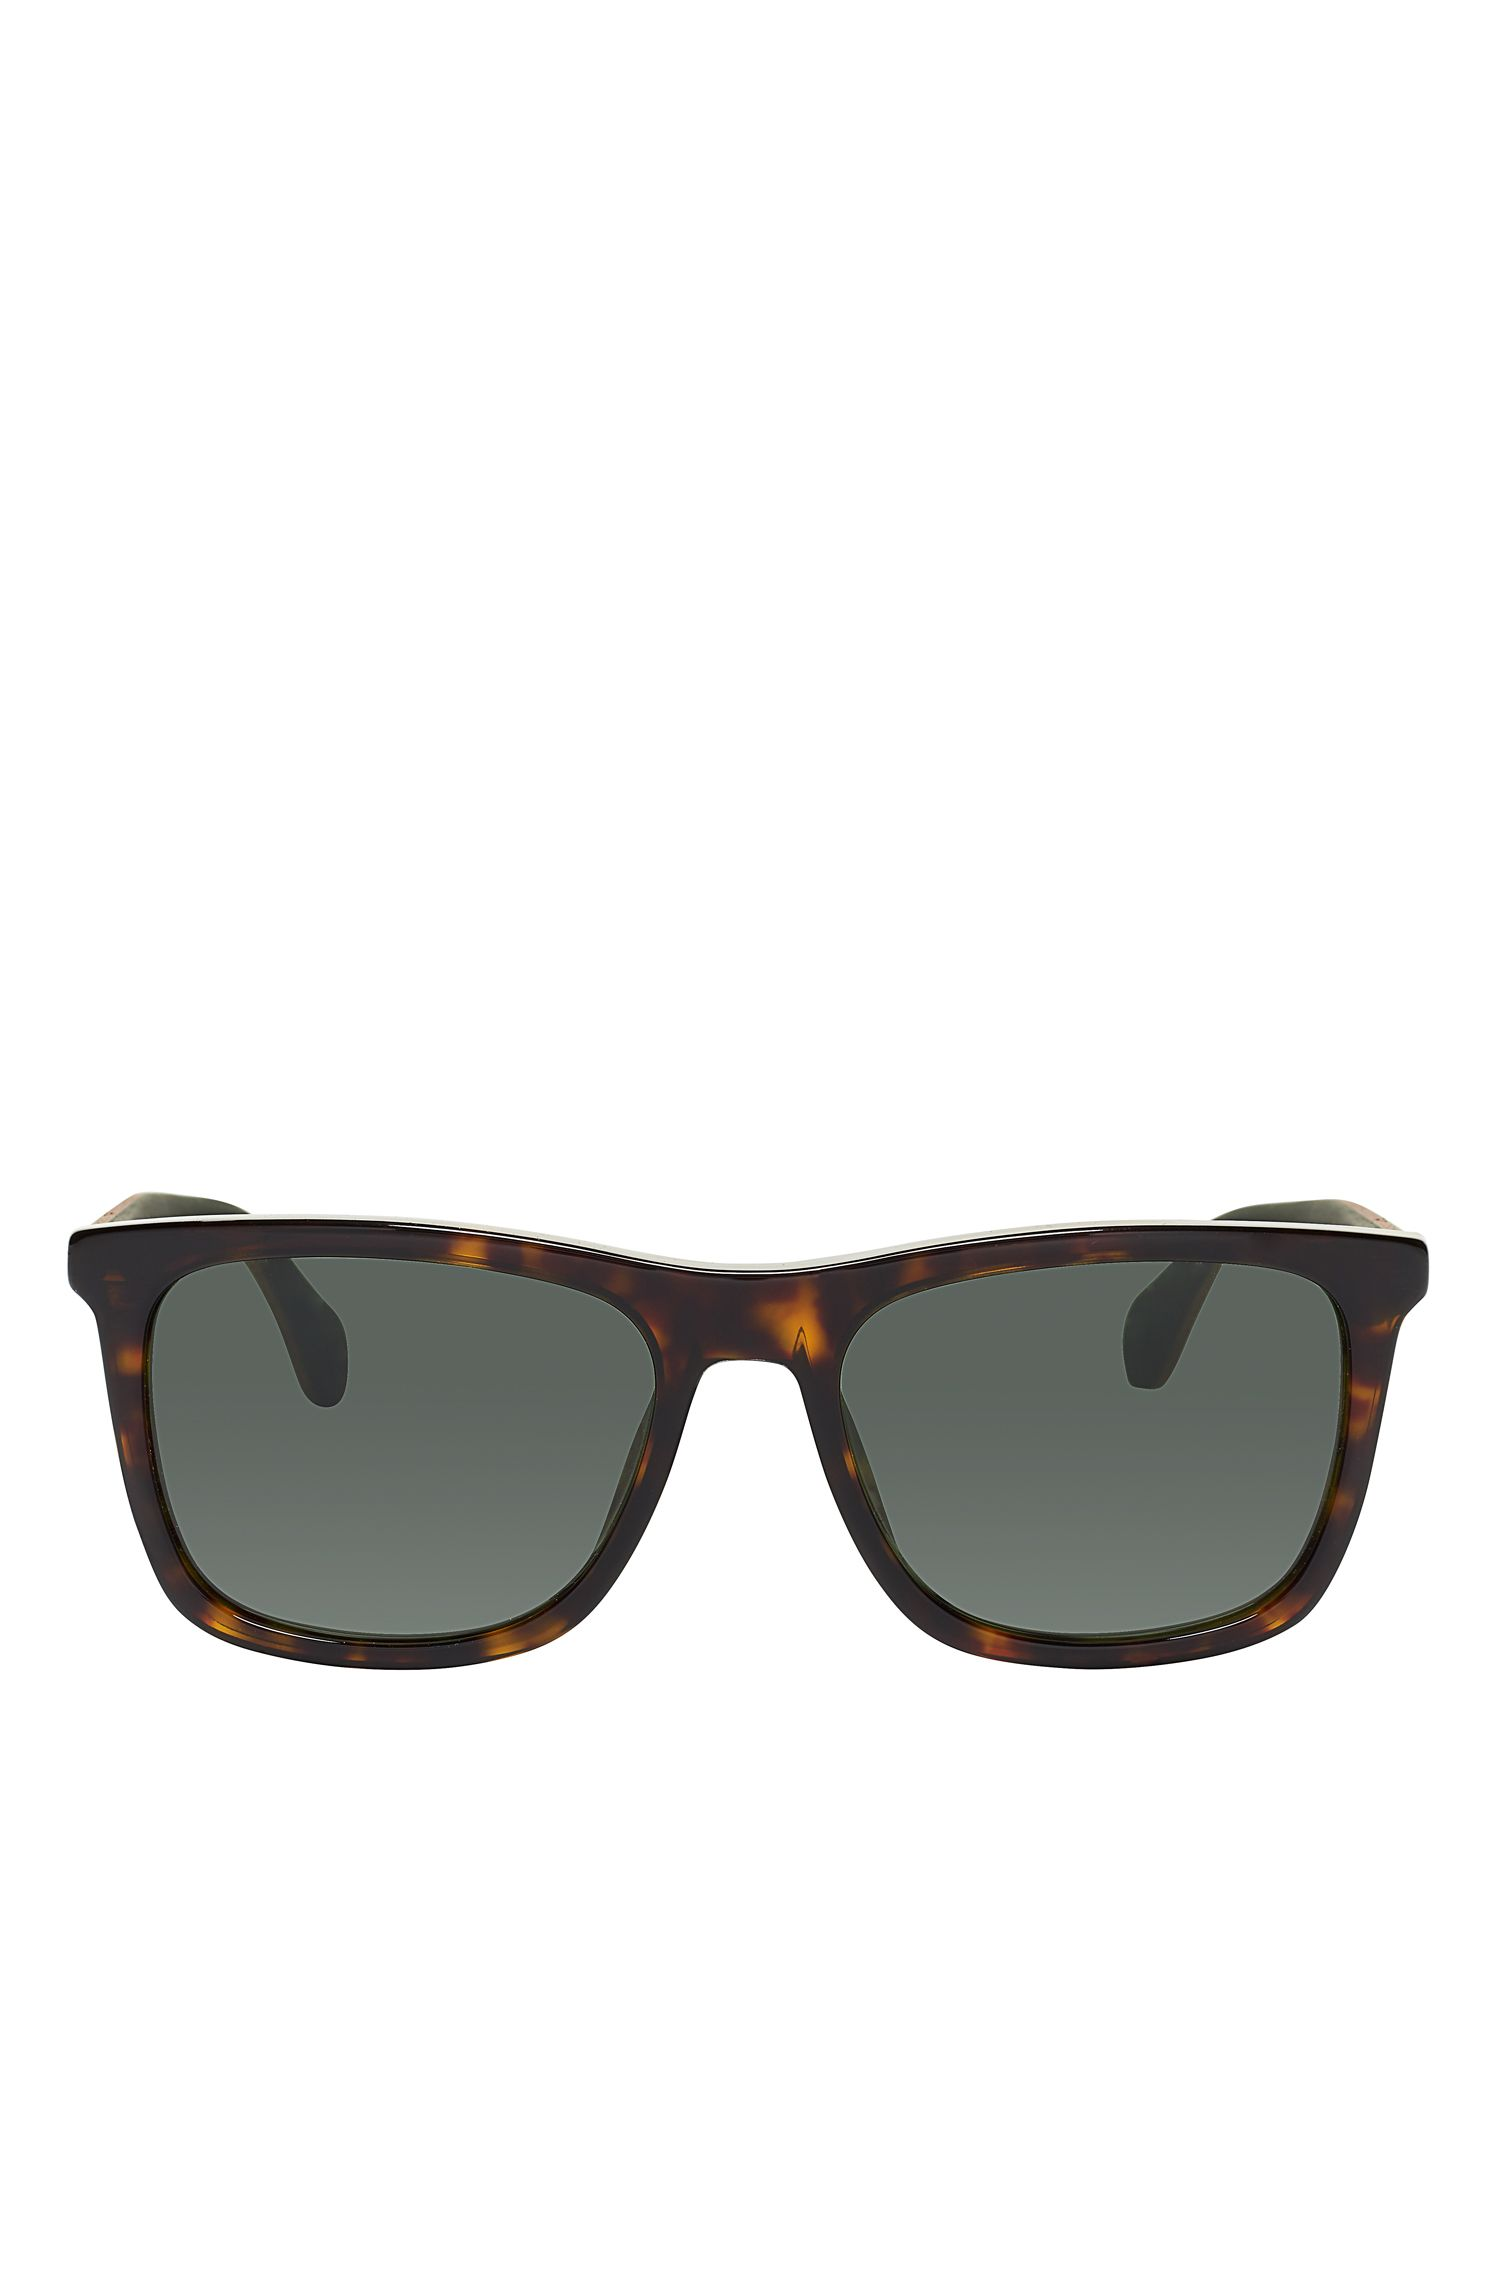 Gray Green Lens Walnut Sunglasses | BOSS 0776S, Assorted-Pre-Pack